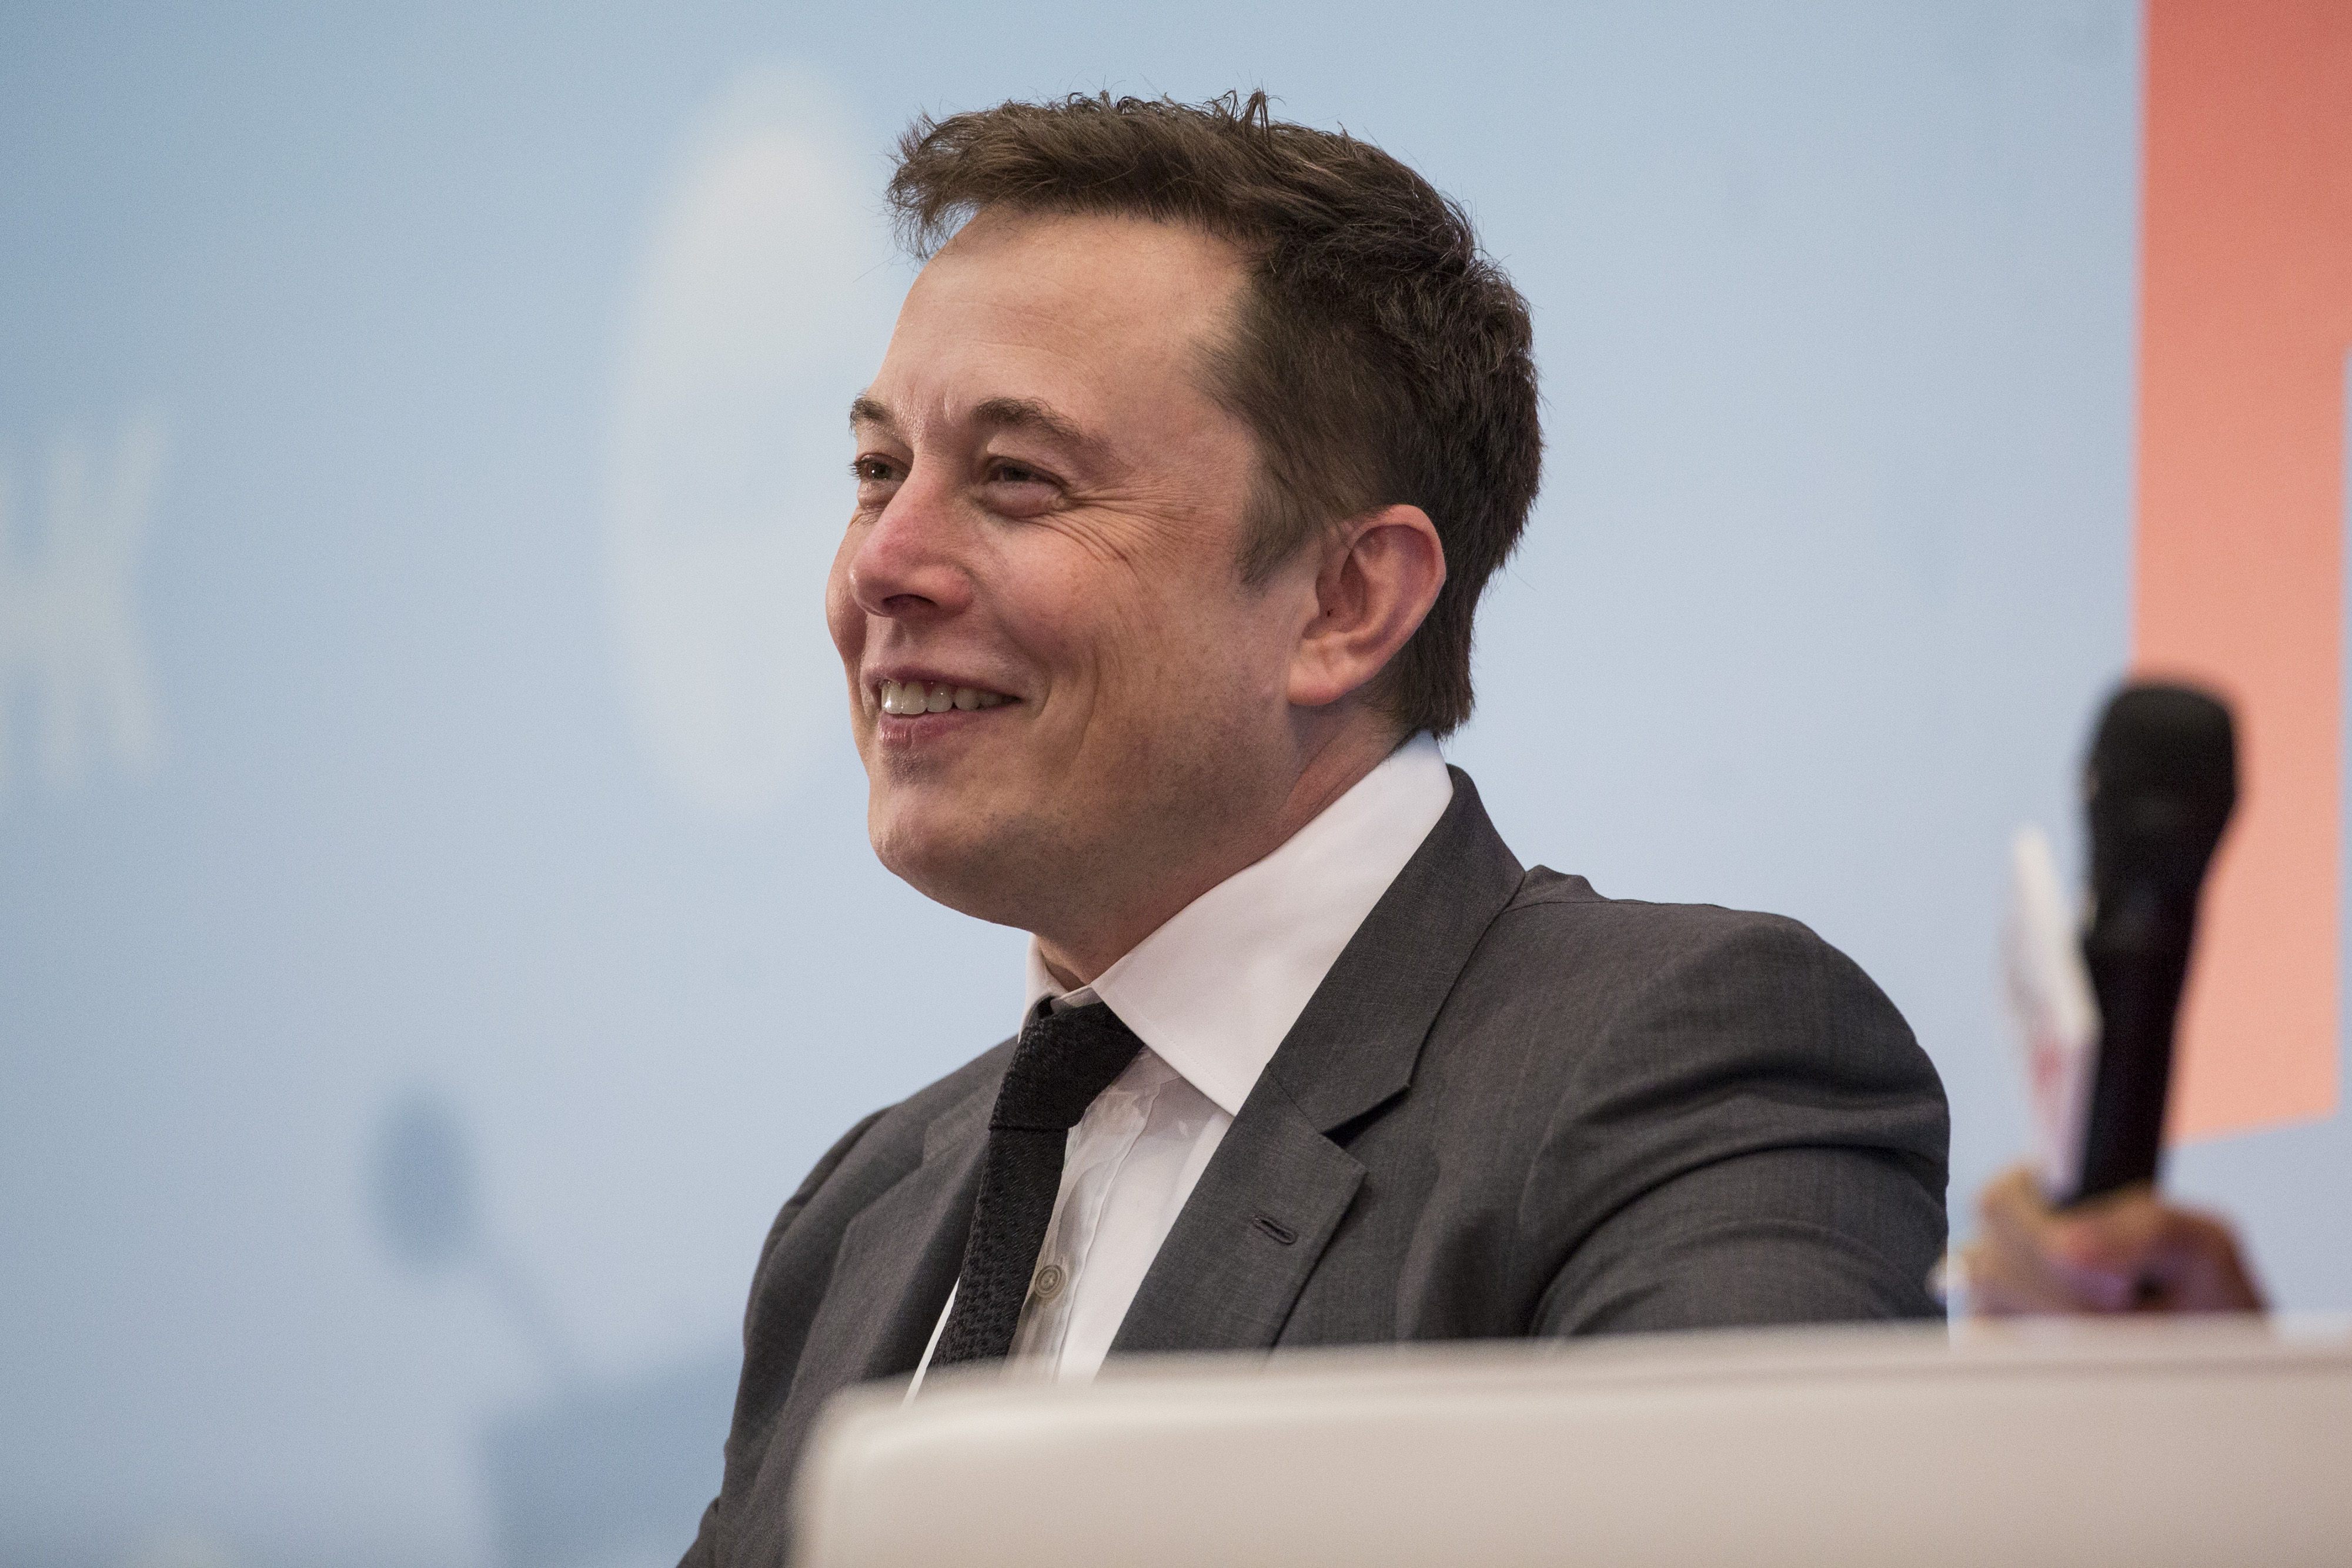 Billionaire Elon Musk, chief executive officer of Tesla Motors Inc., reacts during the StartmeupHK Venture Forum in Hong Kong, China, on Tuesday, Jan. 26, 2016. Tesla is looking for a Chinese production partner but is  still trying to figure that out,  Musk said. Photographer: Justin Chin/Bloomberg via Getty Images